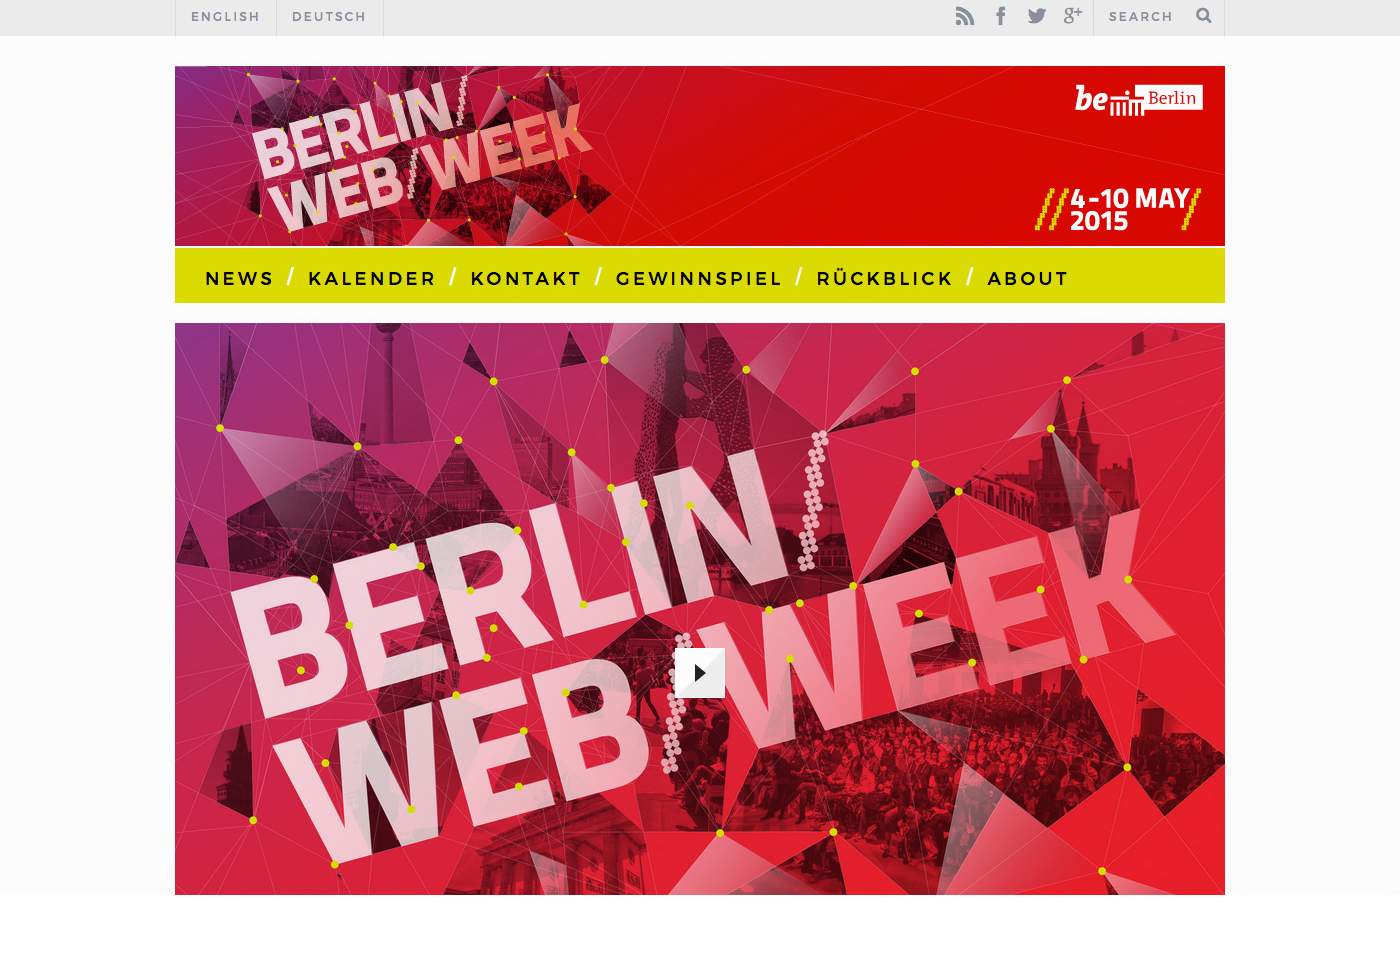 Navarts Webdesign - Berlin Webweek 2015